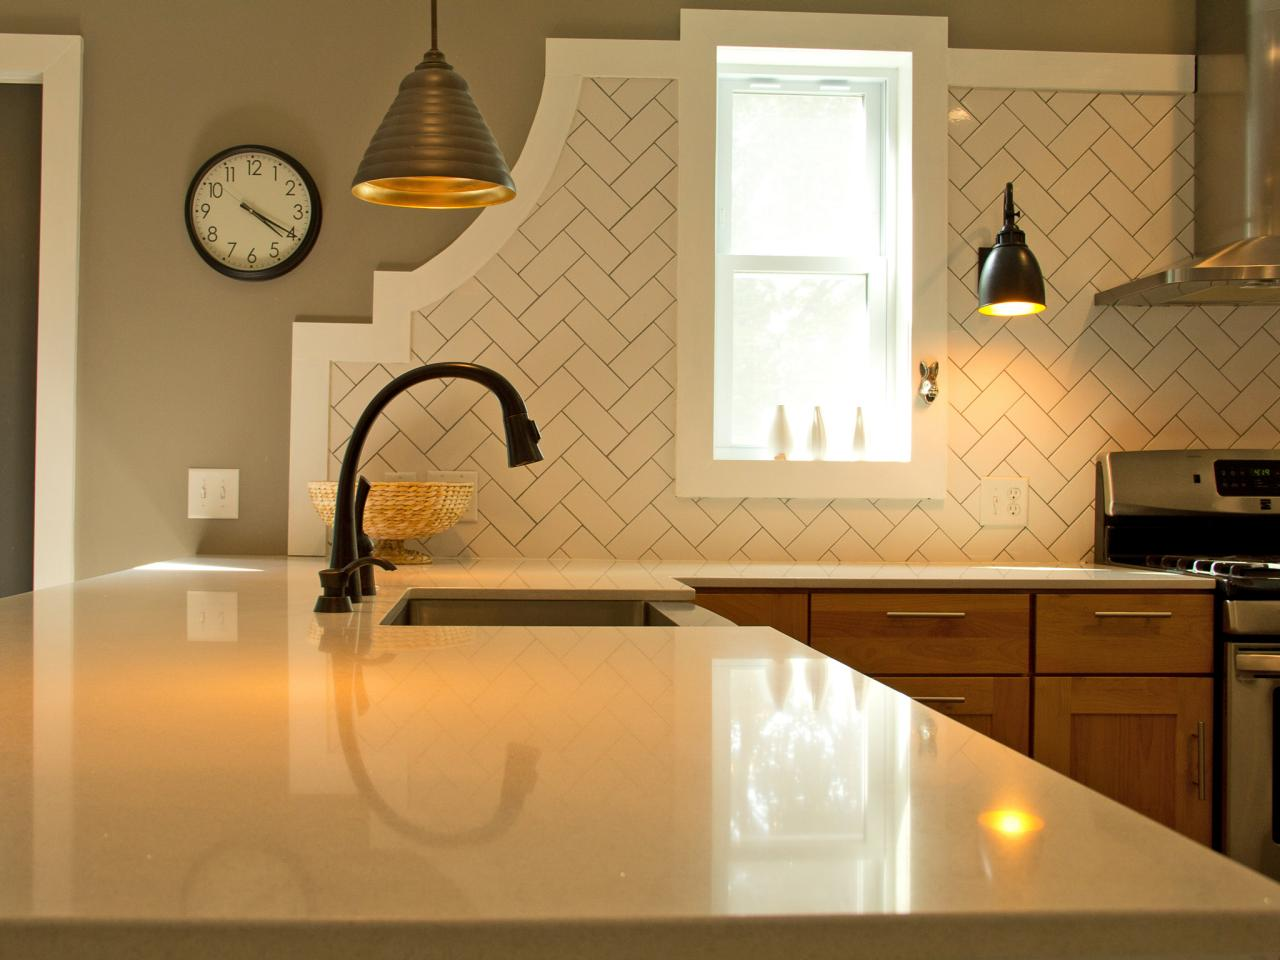 Backsplash patterns pictures ideas tips from hgtv hgtv tags dailygadgetfo Image collections